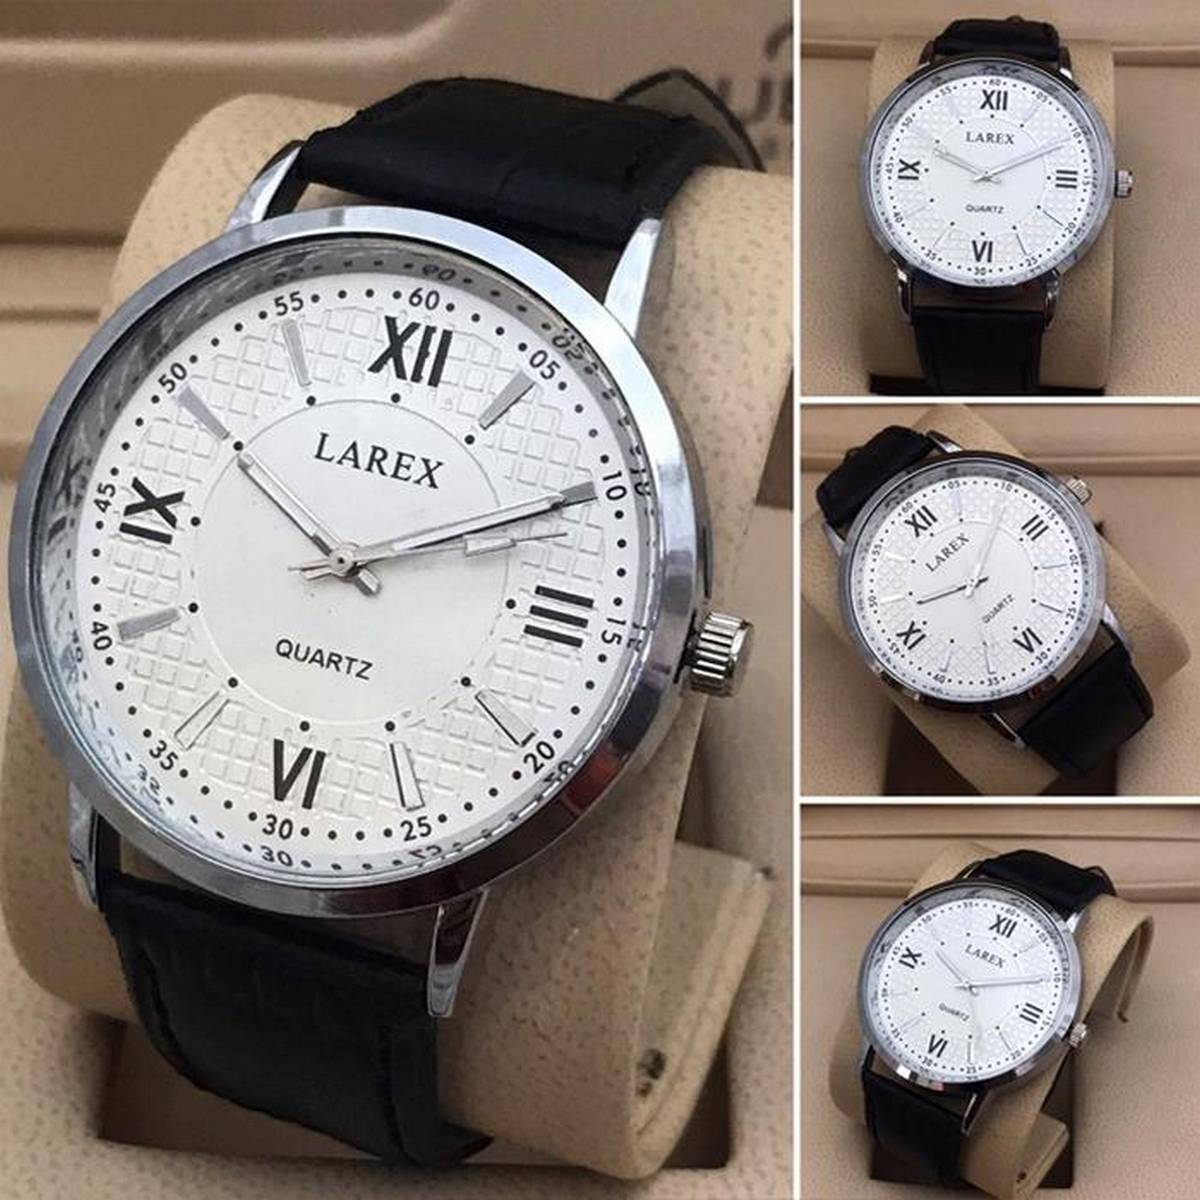 Larex Casual Watch for Man Quartz Watches for Boys & Men New Fashion Wrist watch for Casual And Party Wear and Gifts